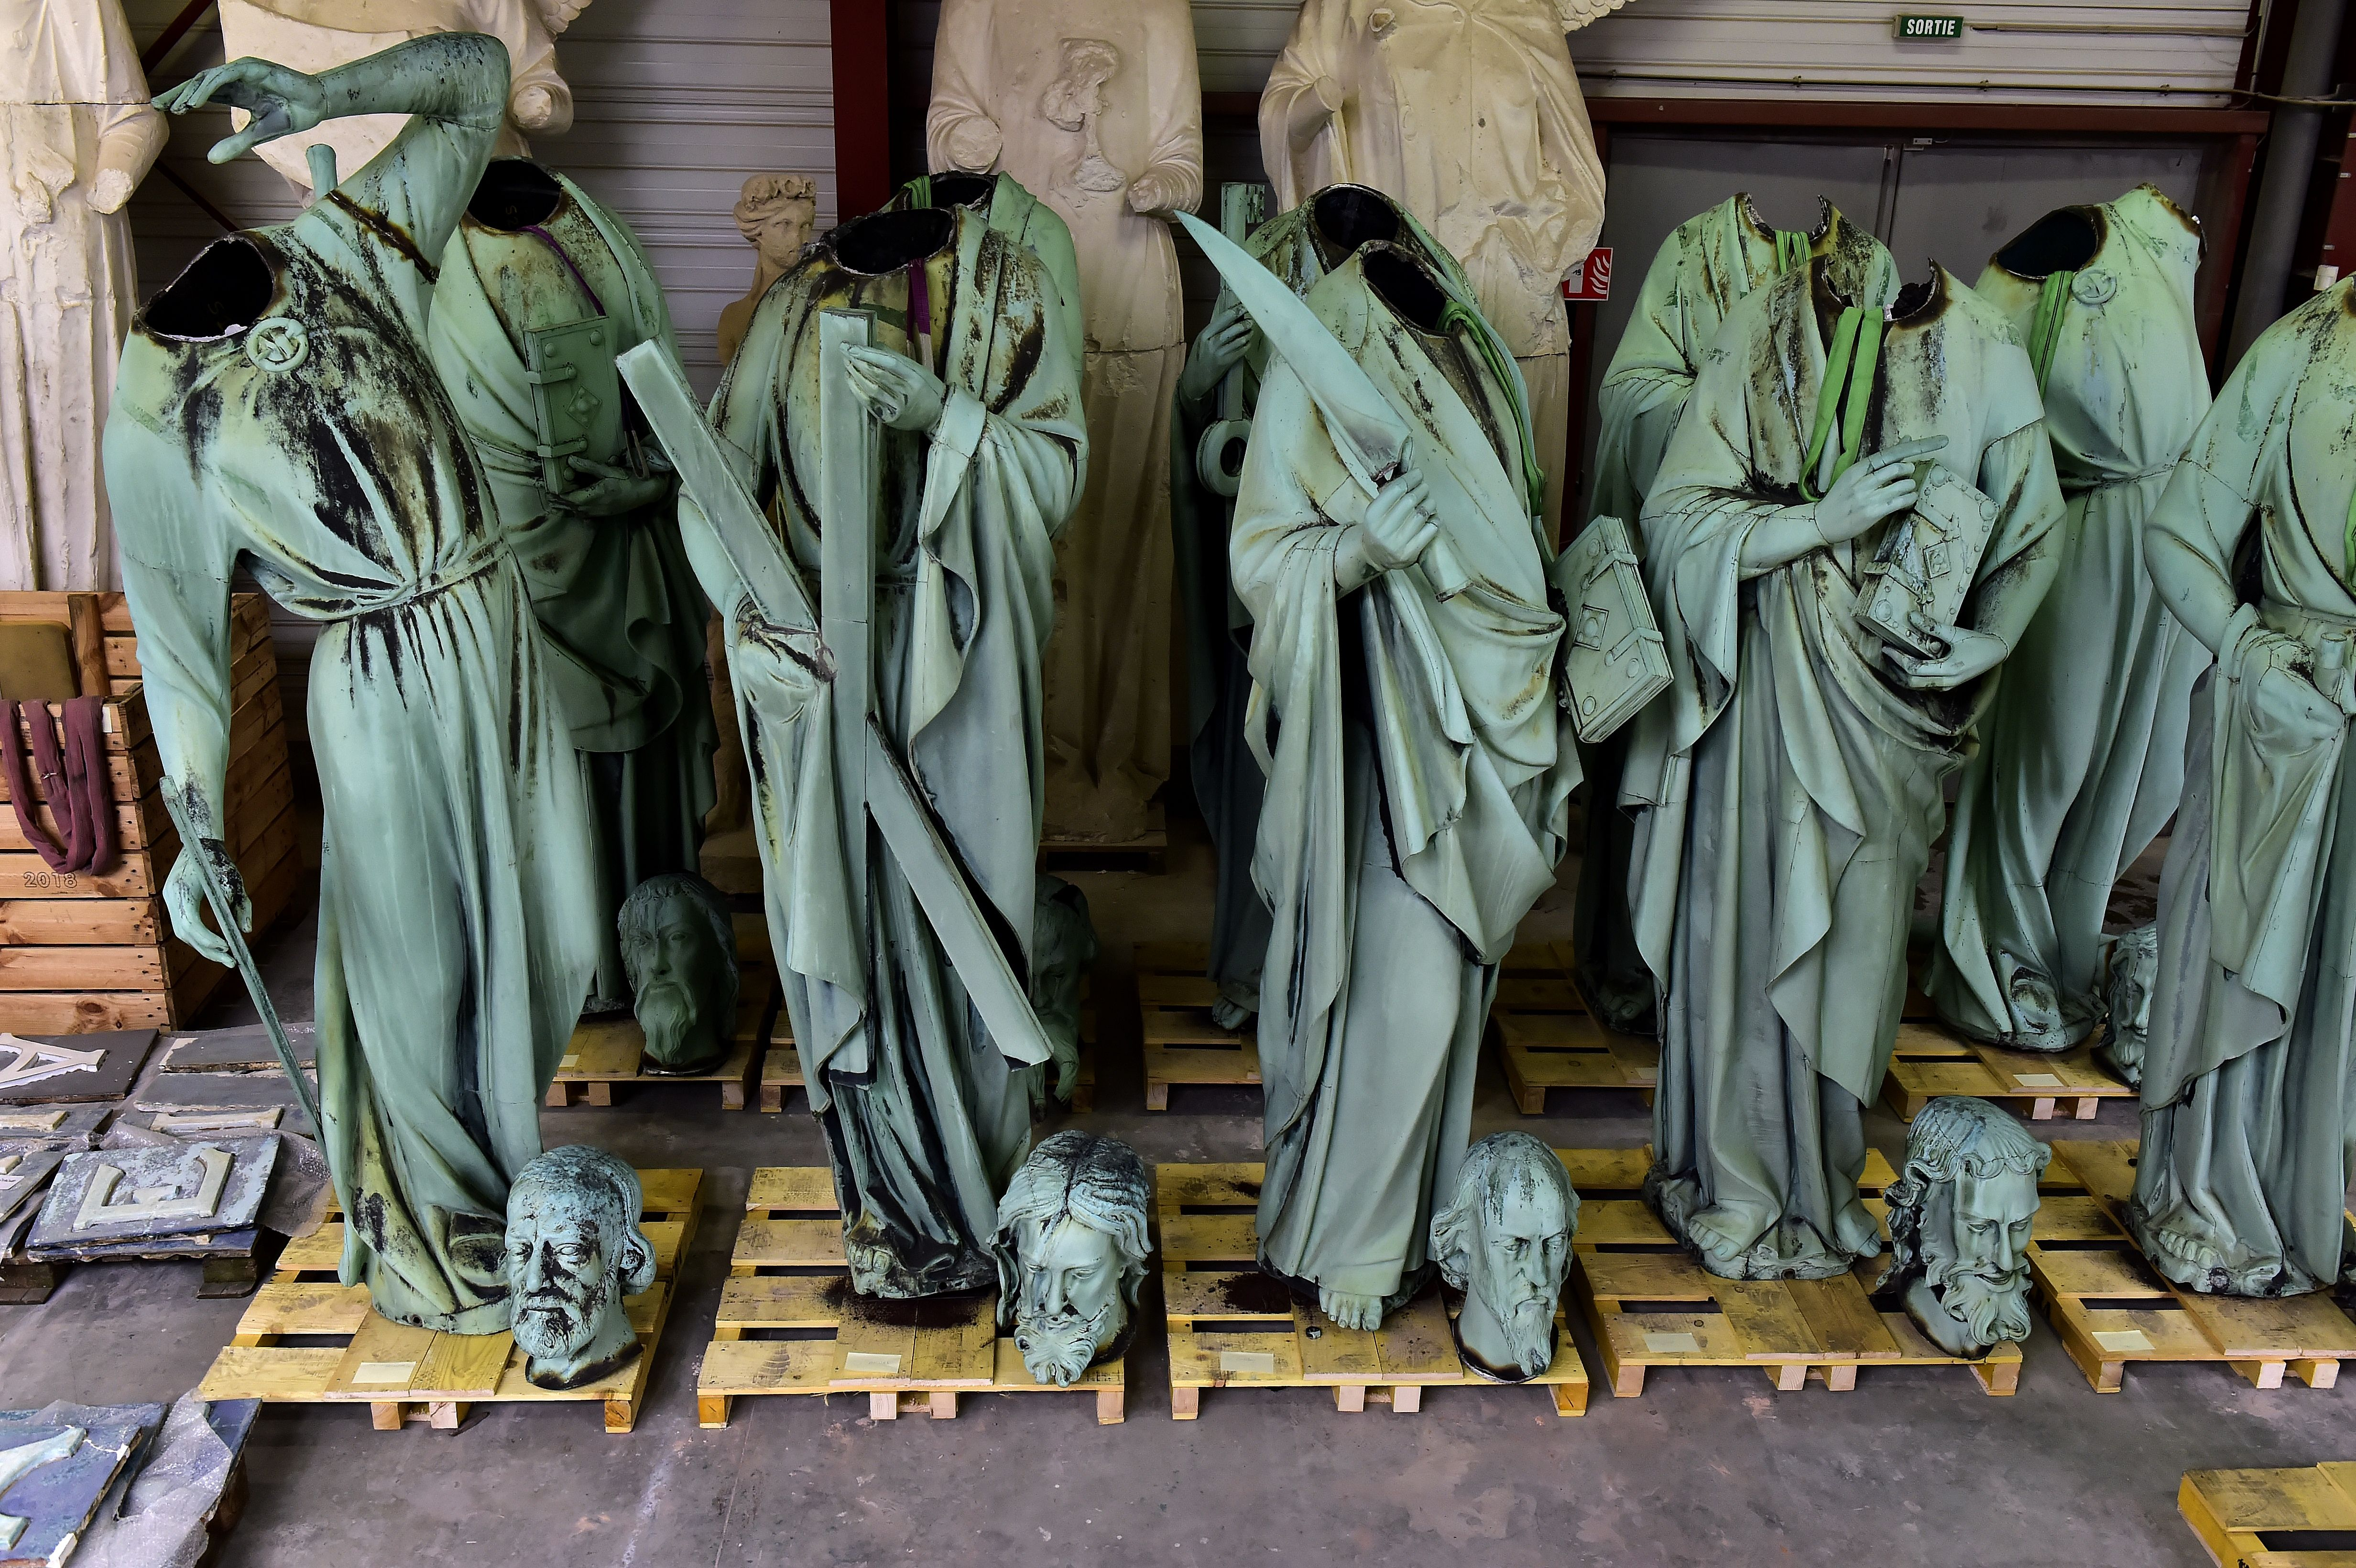 Statues which sat around the spire of the Notre-Dame cathedral stored in a workshop before restoration at Marsac-sur-Isle, near Bordeaux, on Tuesday.